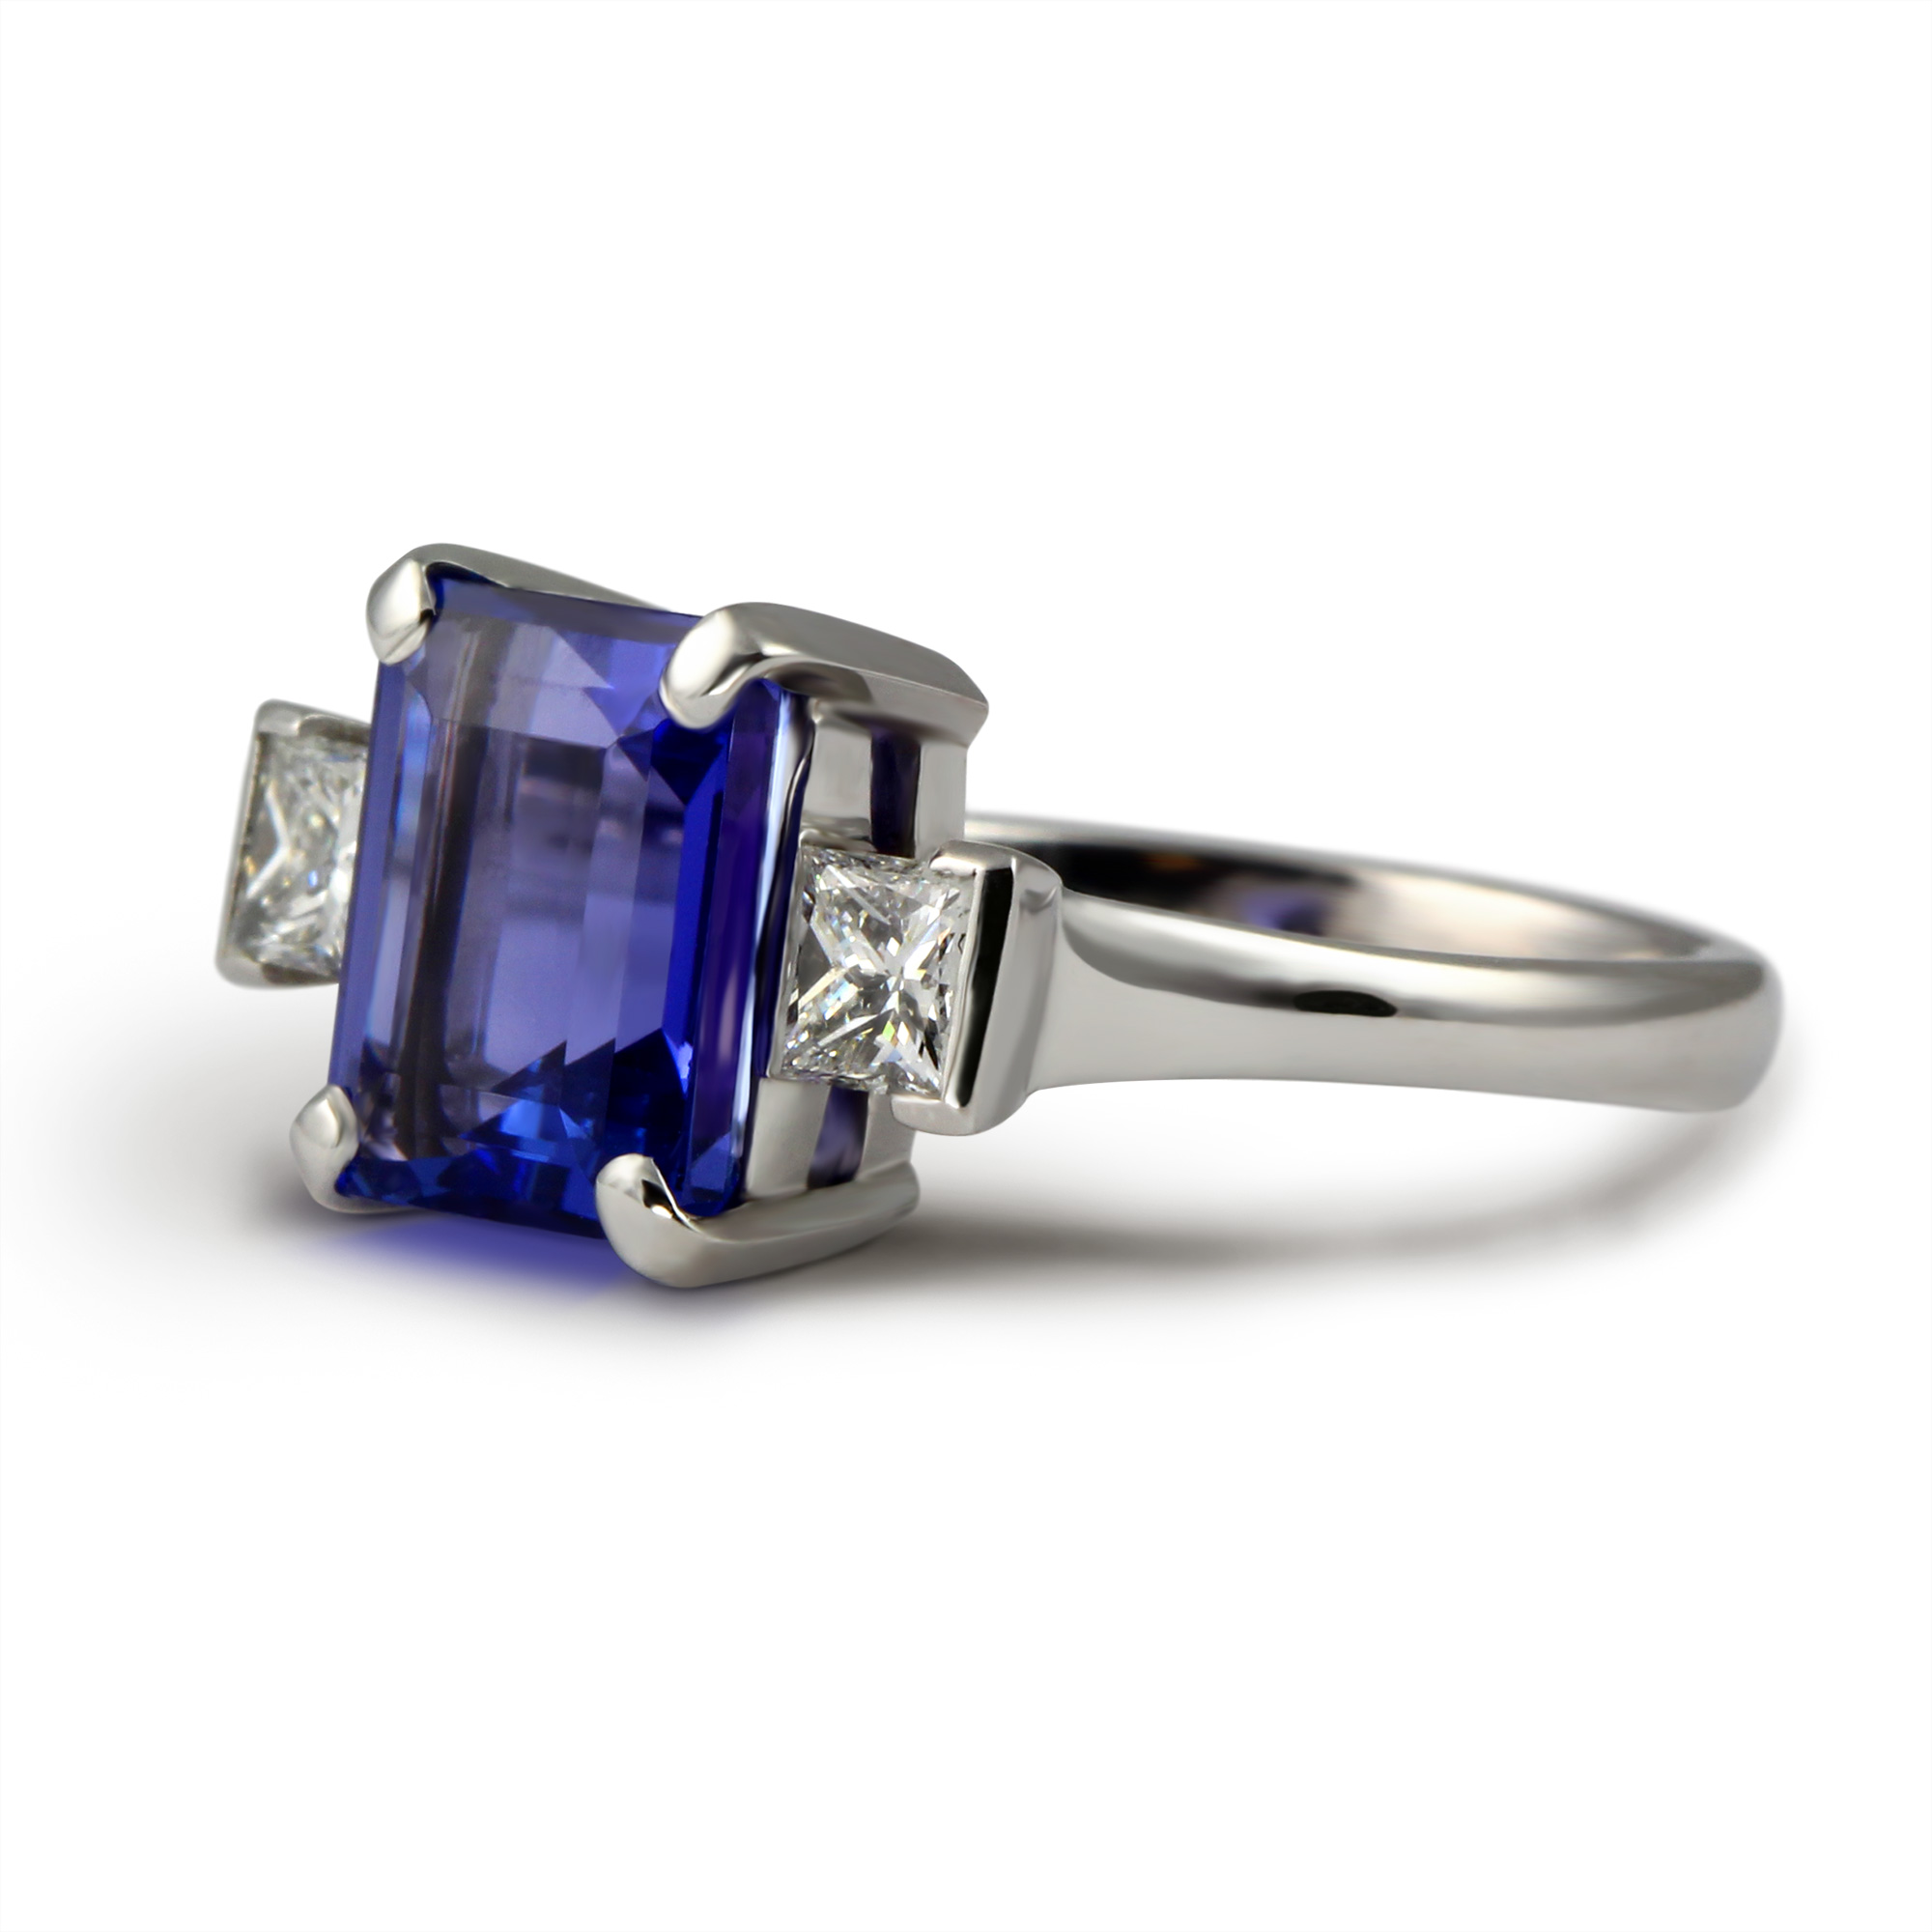 d ring diamond princess cut tanzanite johnstone img three products of henry stone jewellers